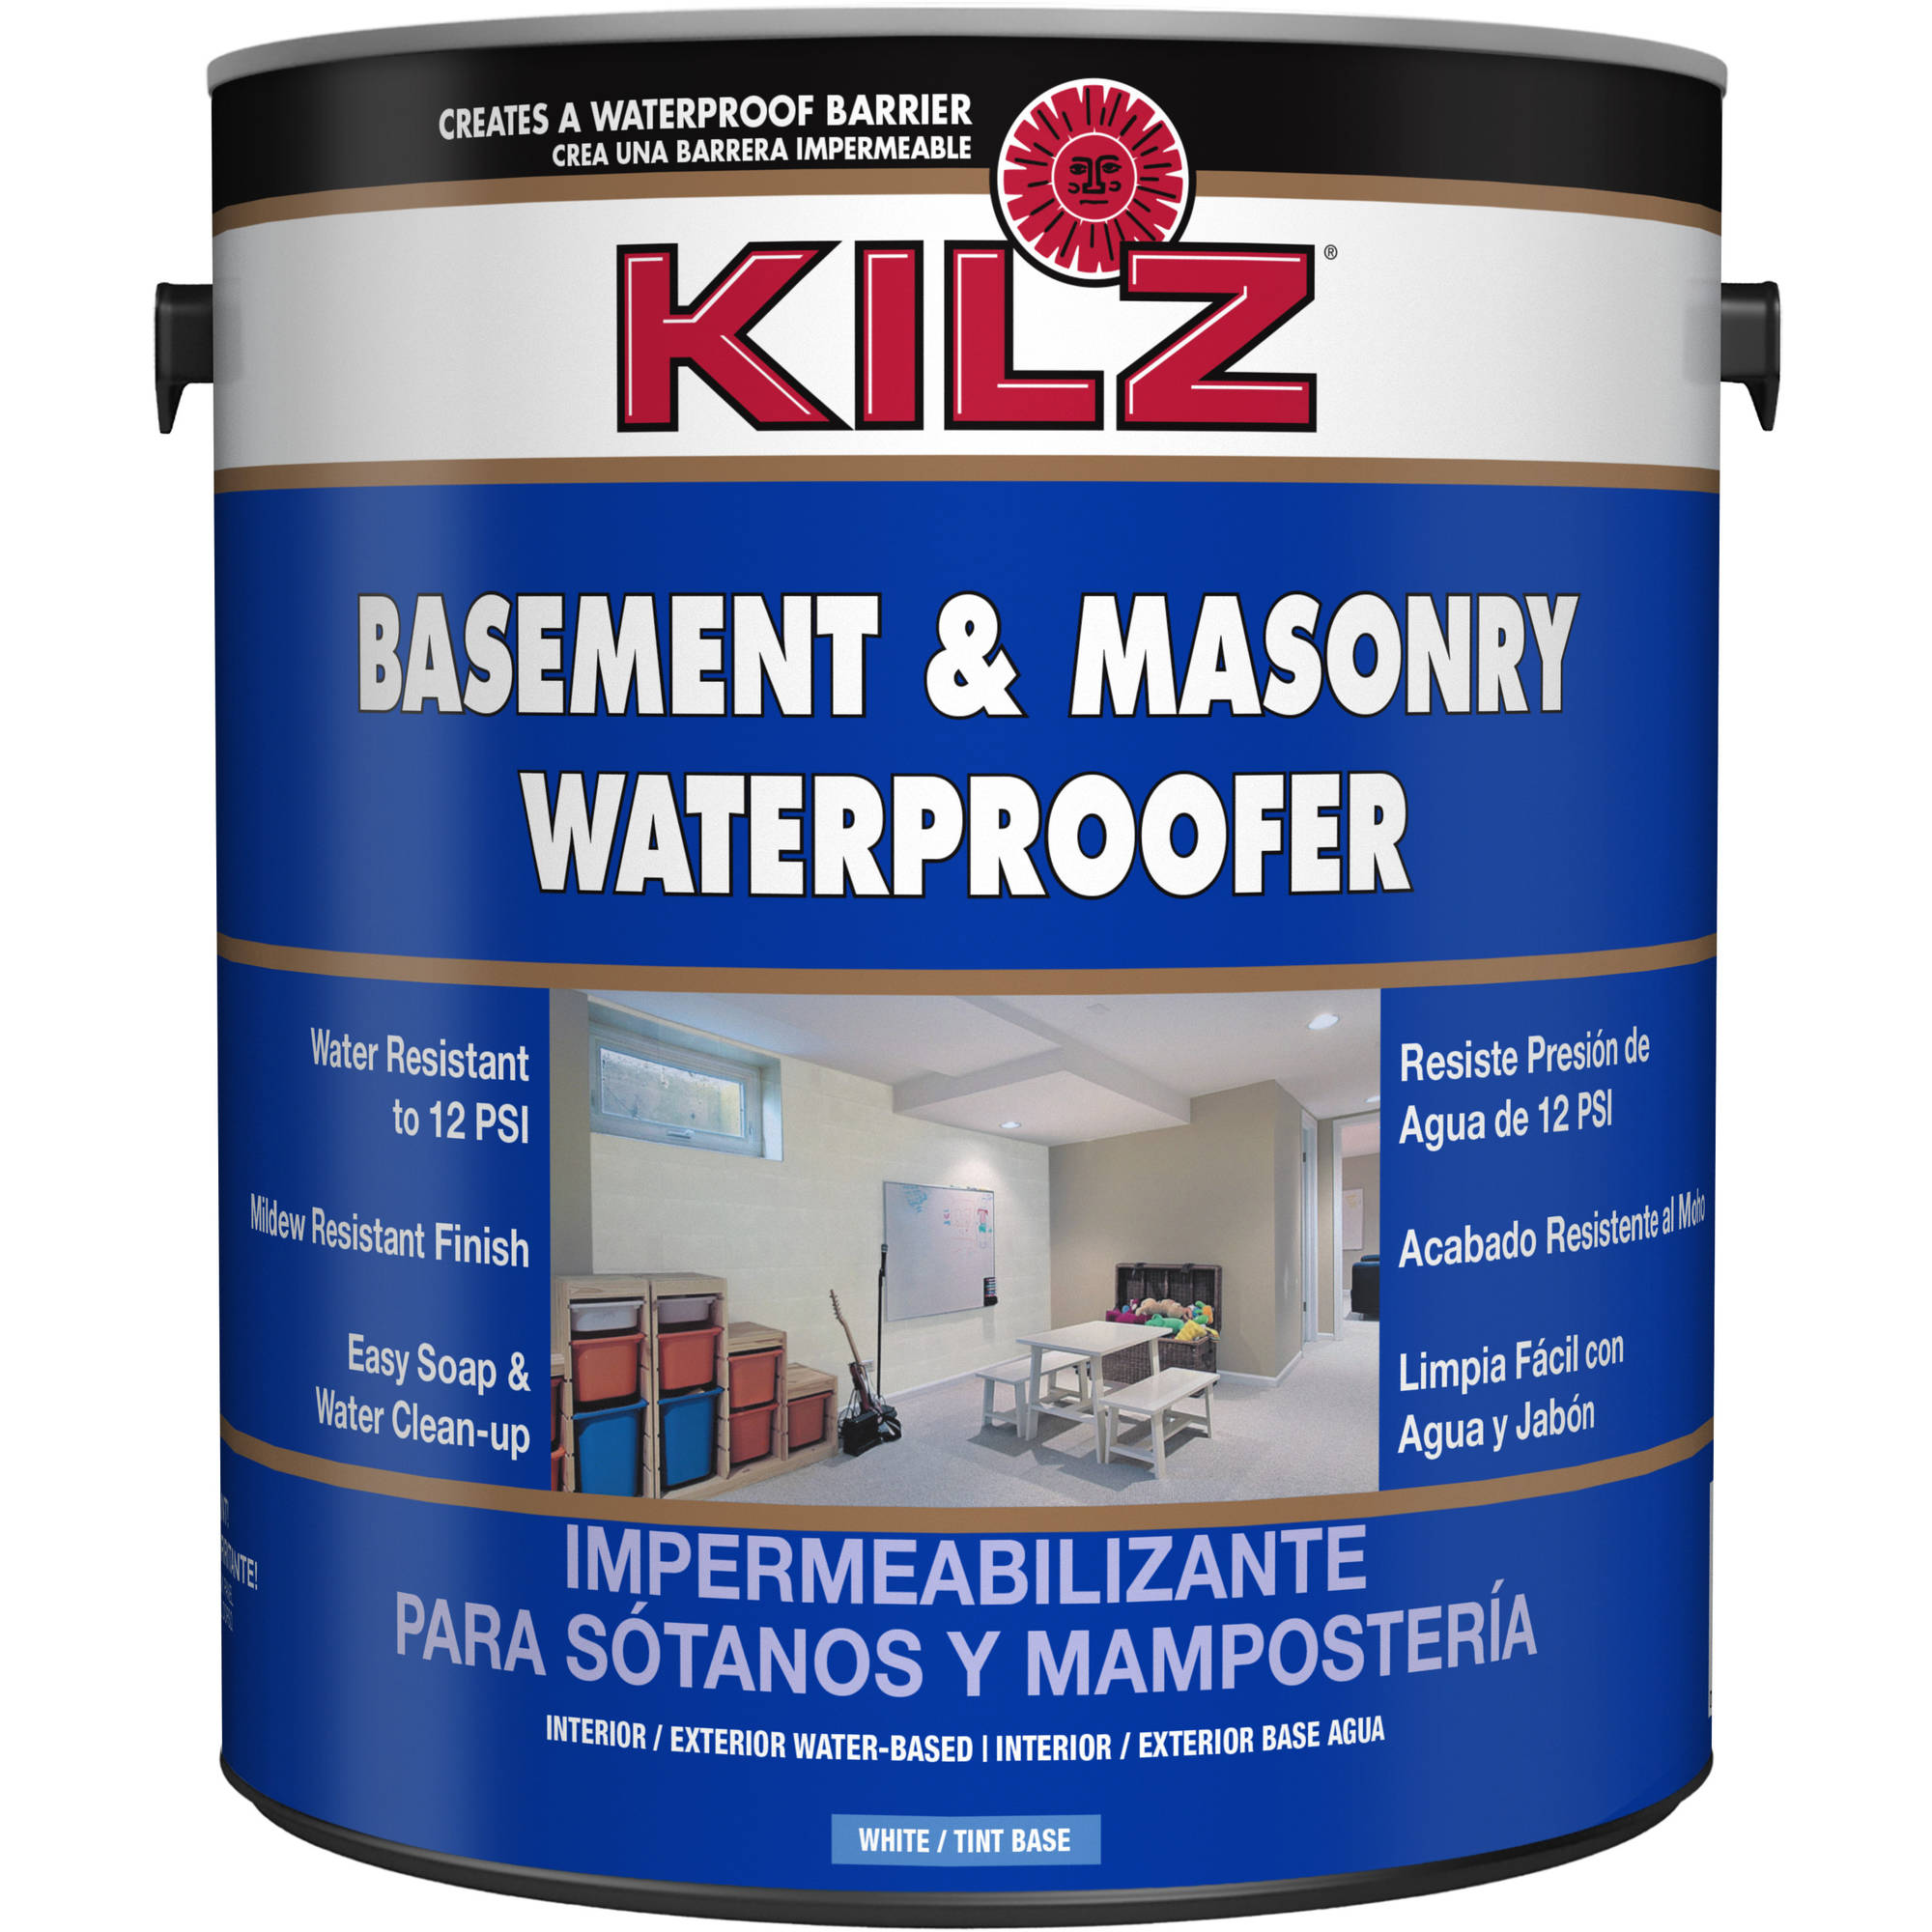 KILZ Basement and Masonry Waterproofer - Walmart.com